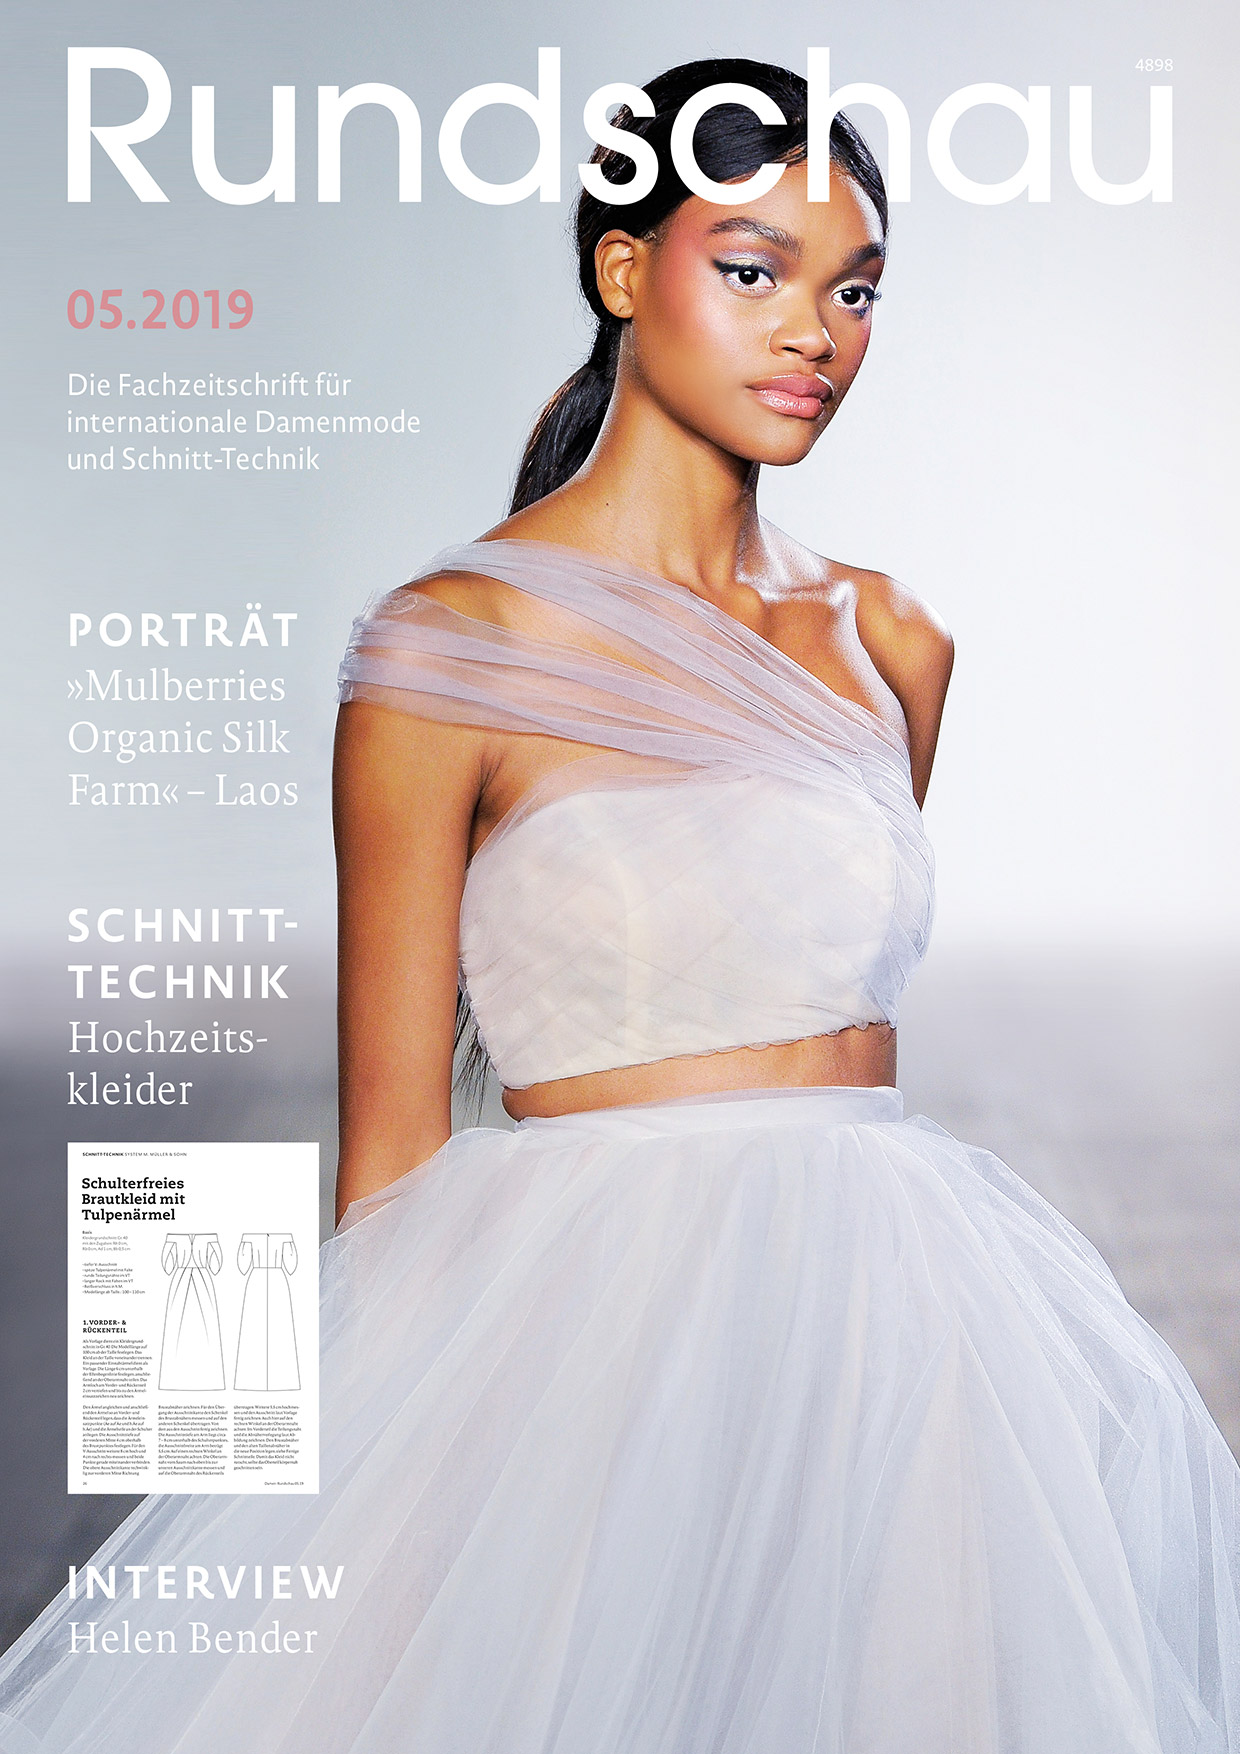 Produkt: Rundschau für Internationale Damenmode 05.2019